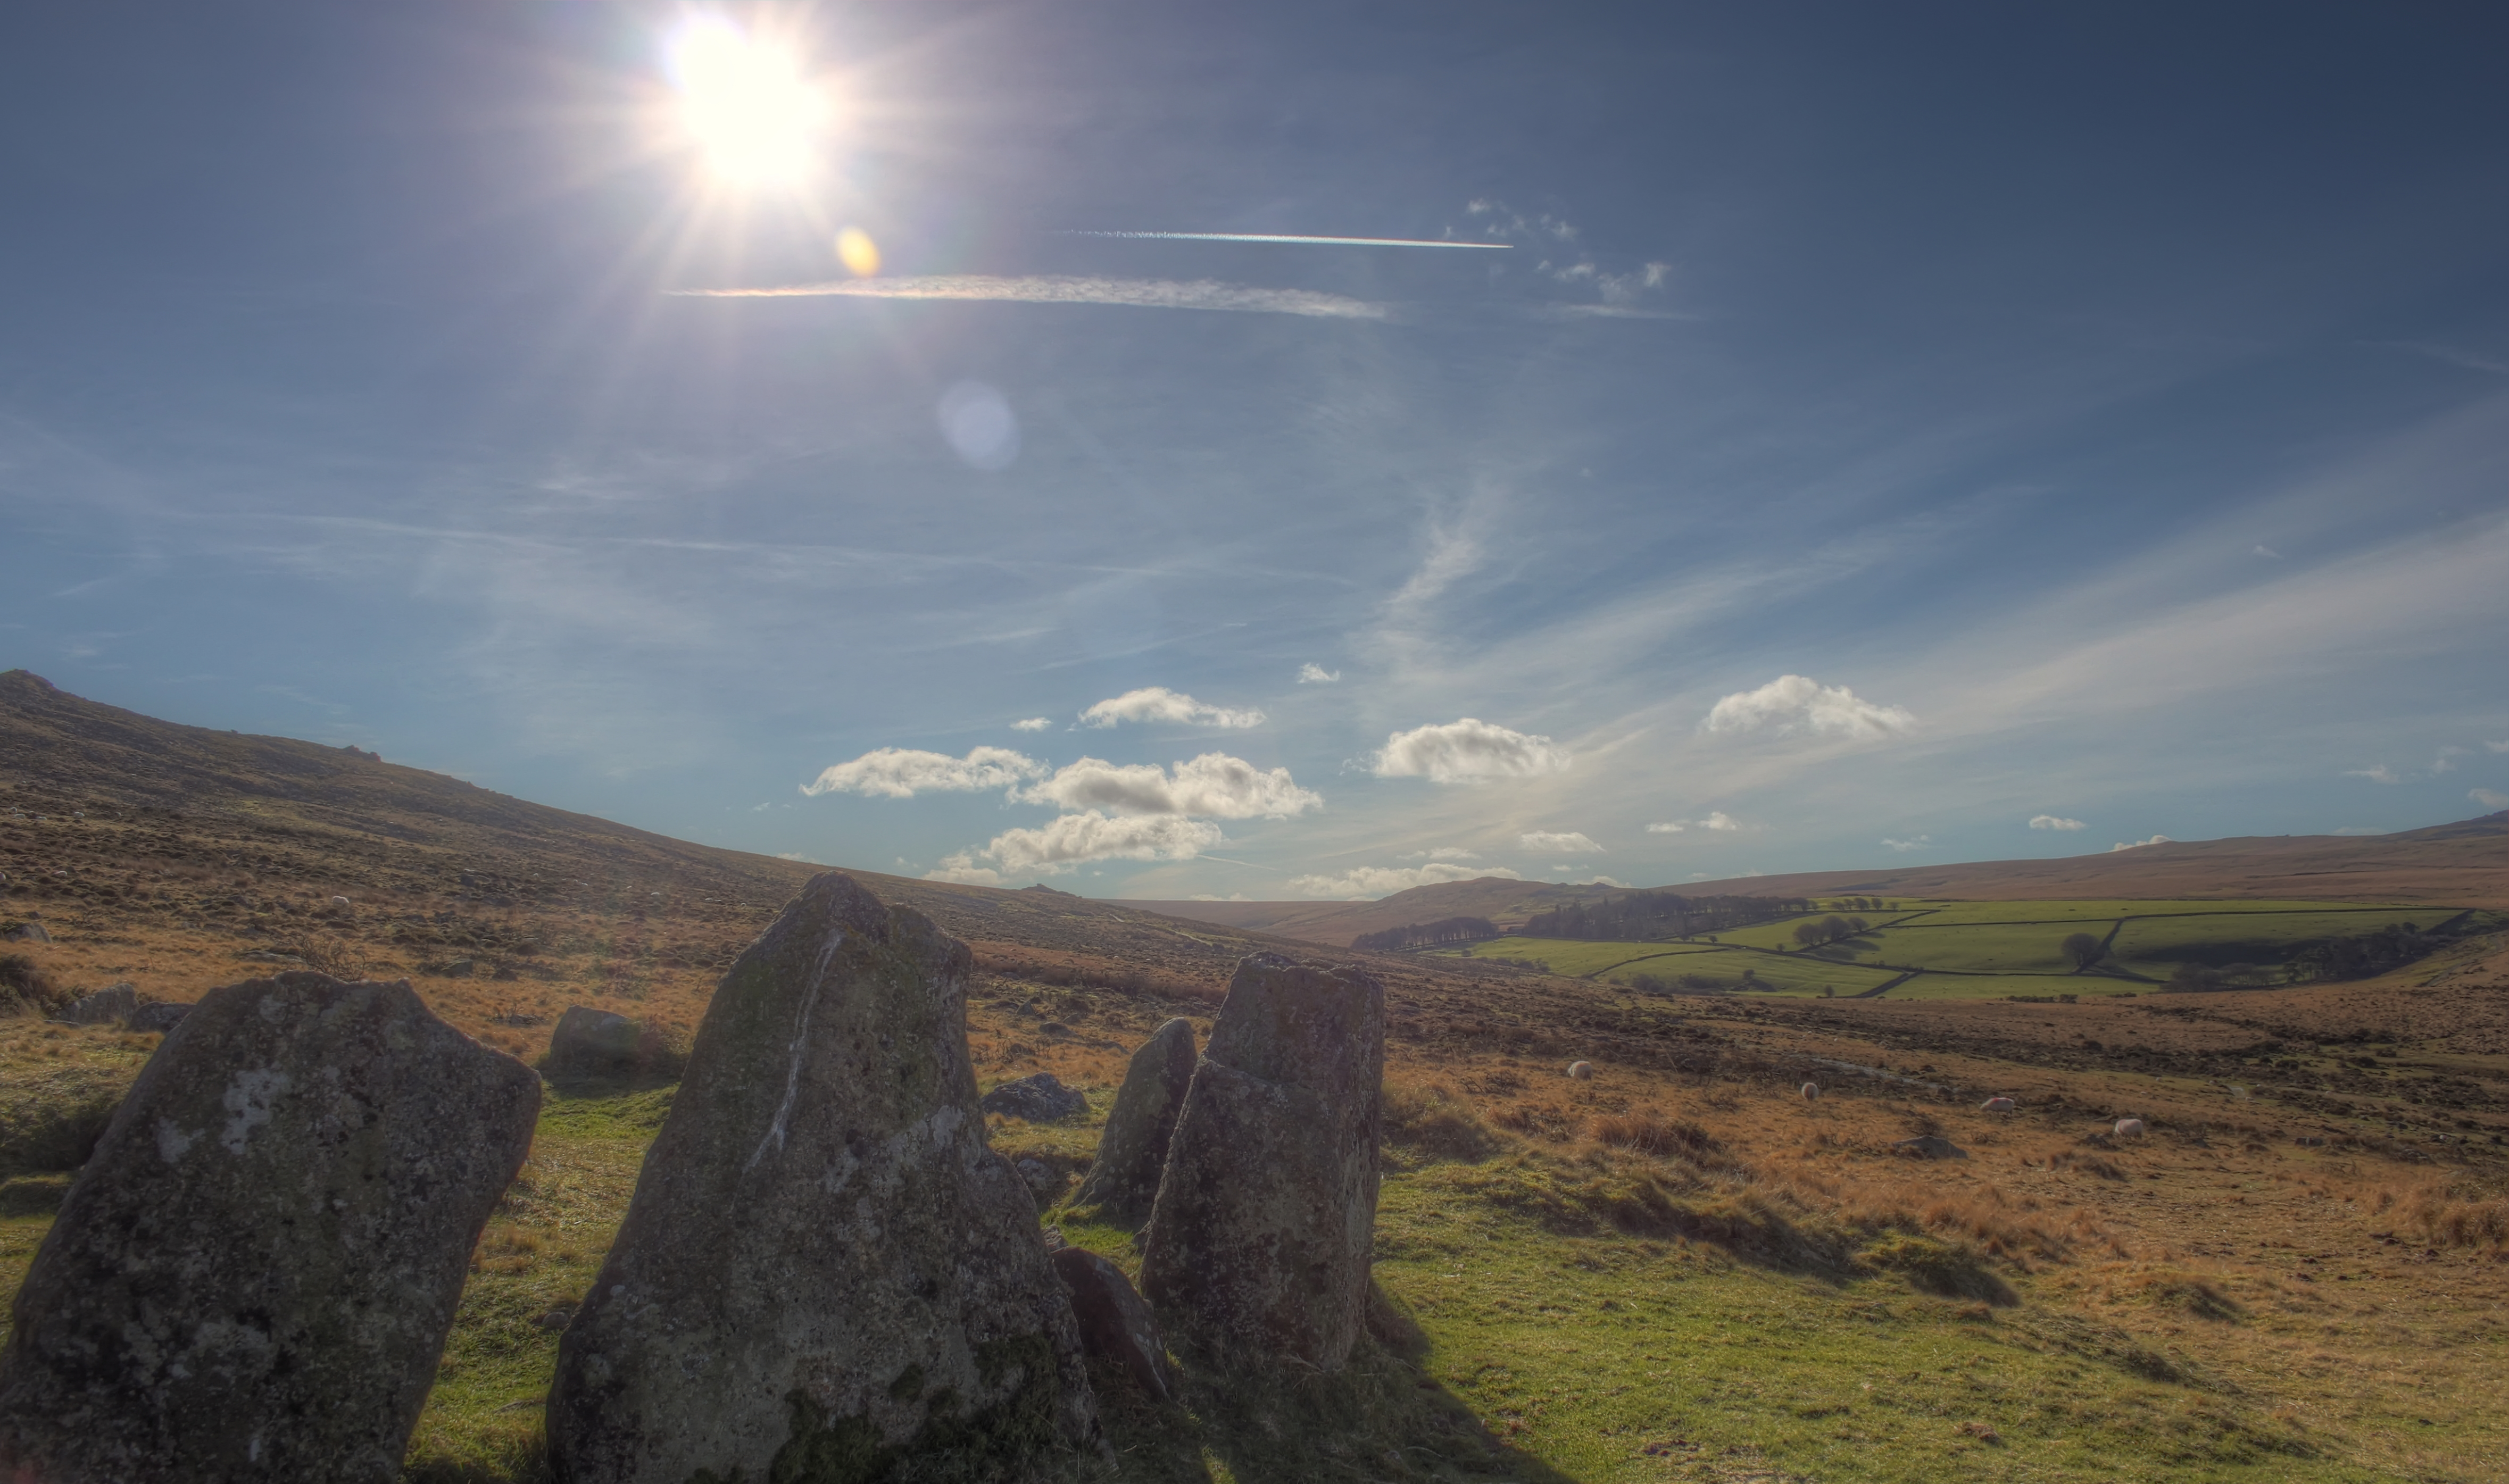 Edge of the stone circle photo